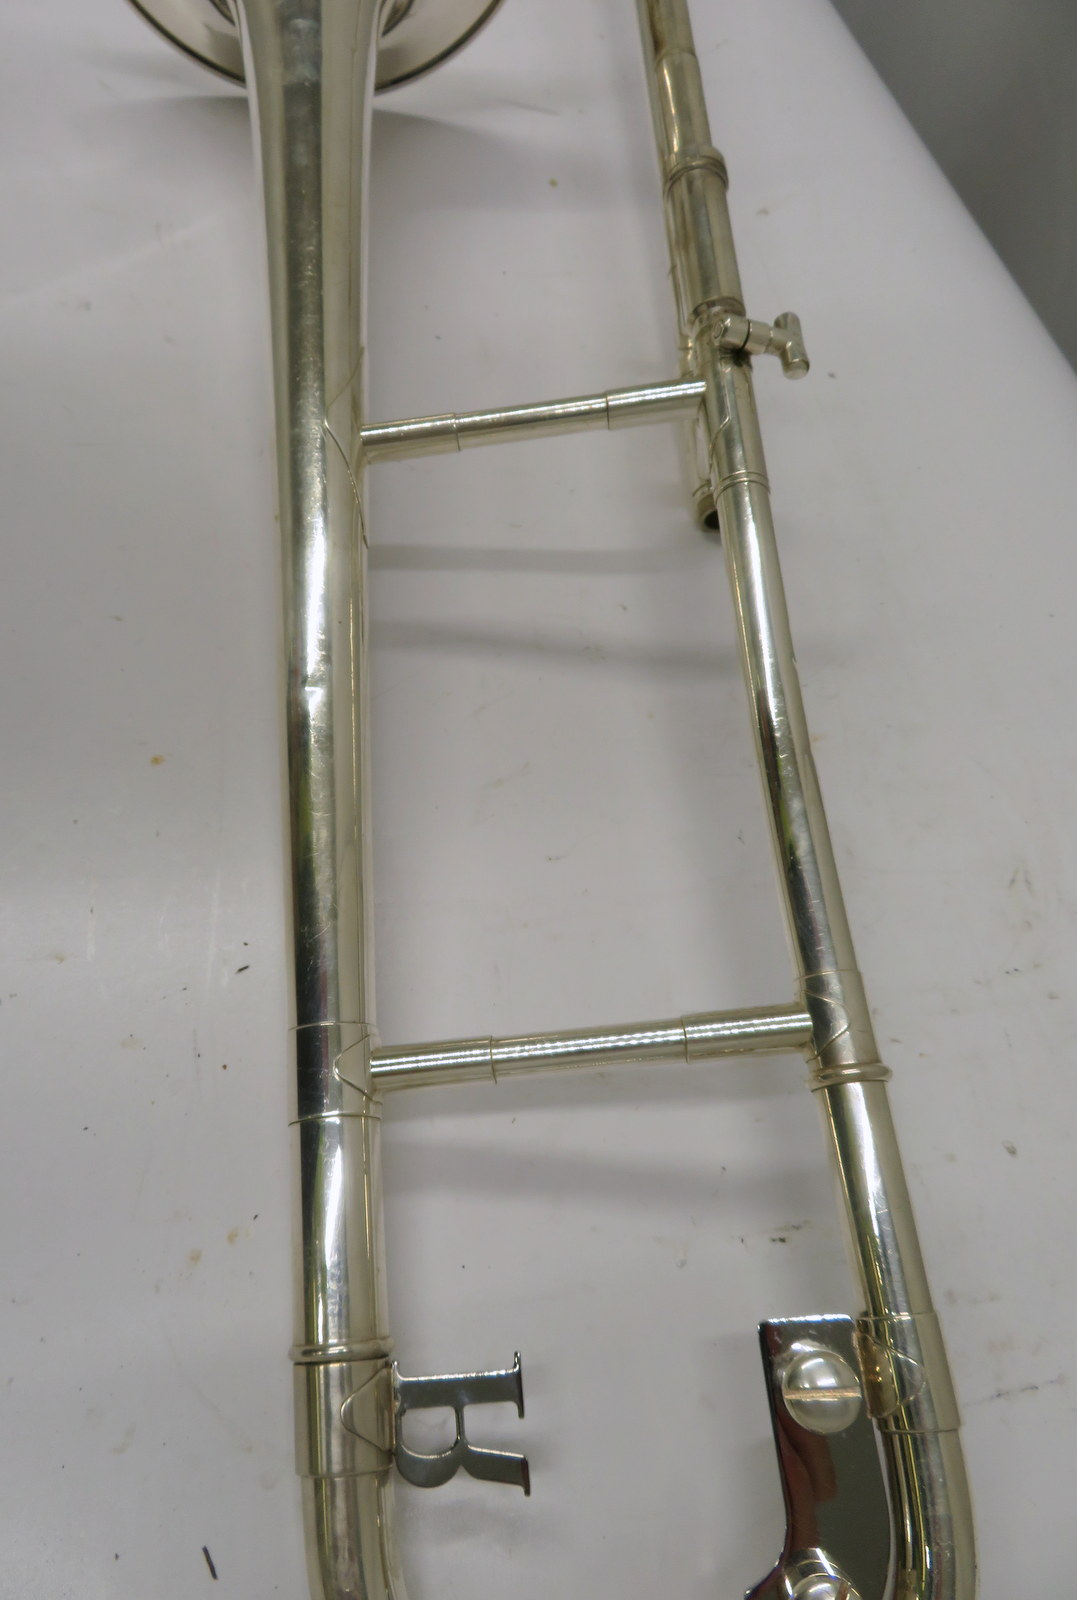 Rath R3 trombone with case. Serial number: R3043. - Image 13 of 14